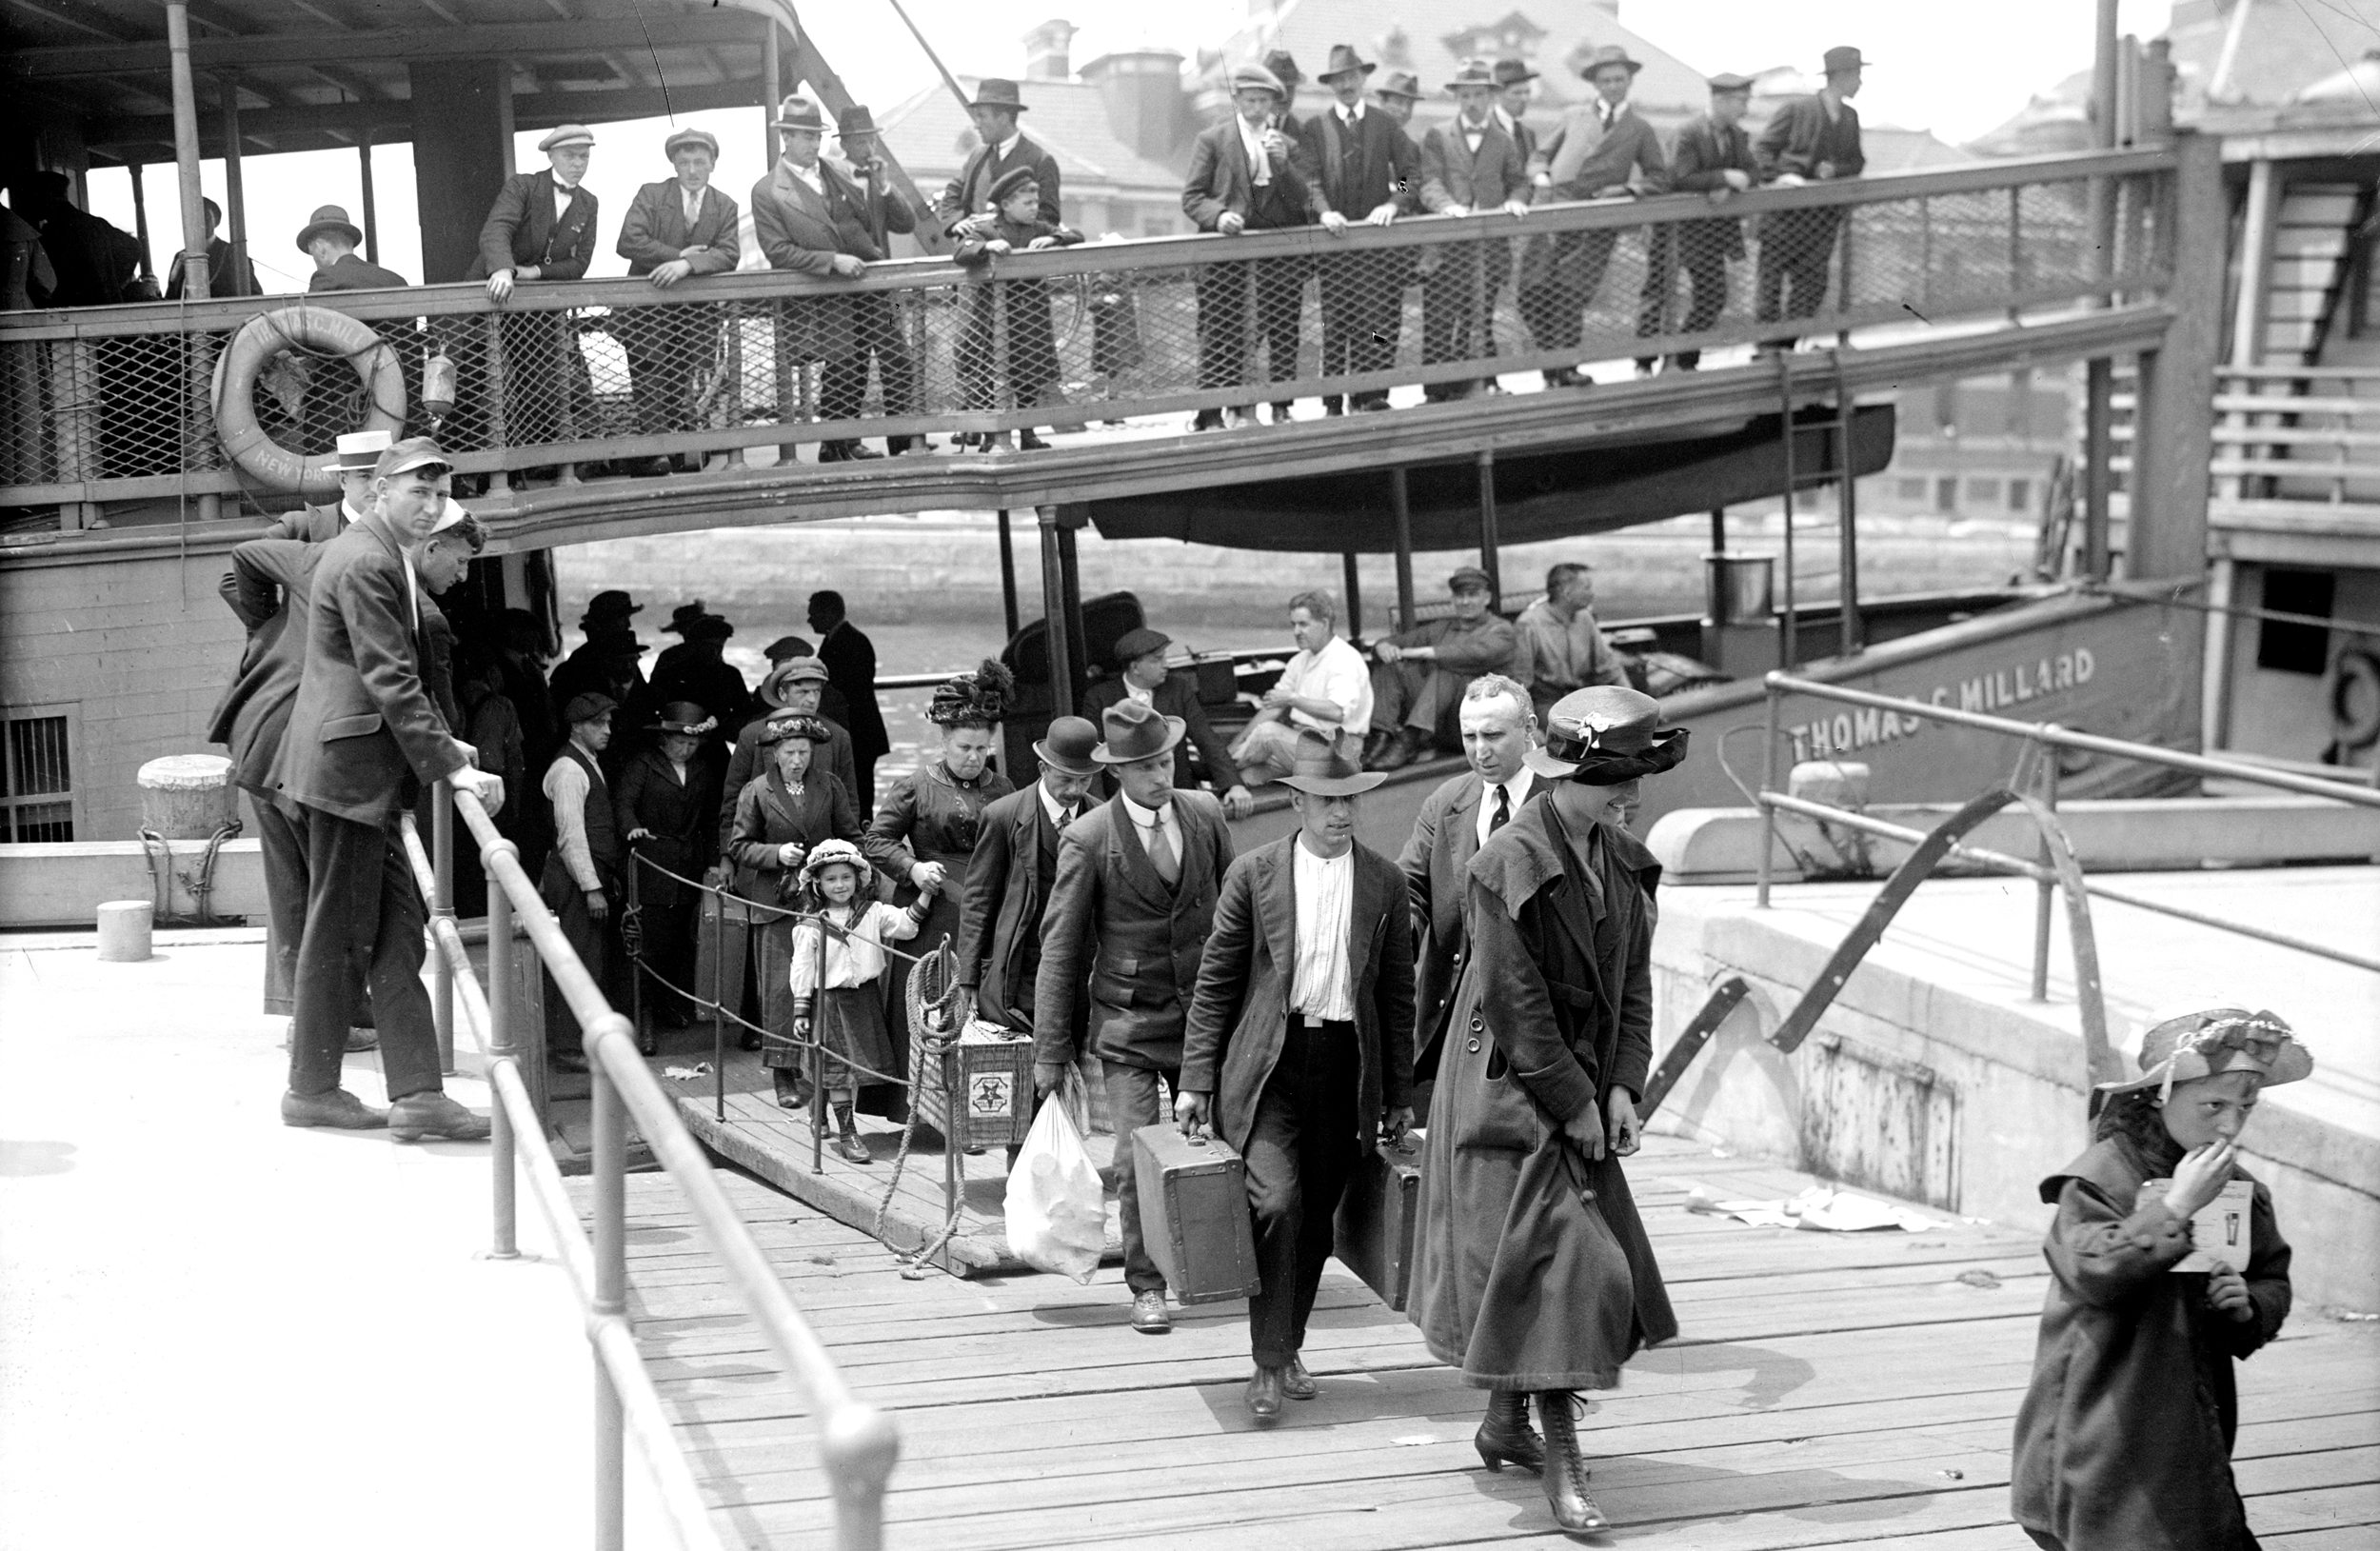 Newly arrived immigrants disembark from the passenger steamer Thomas C. Millard upon their arrival at Ellis Island, in New York, early twentieth century.